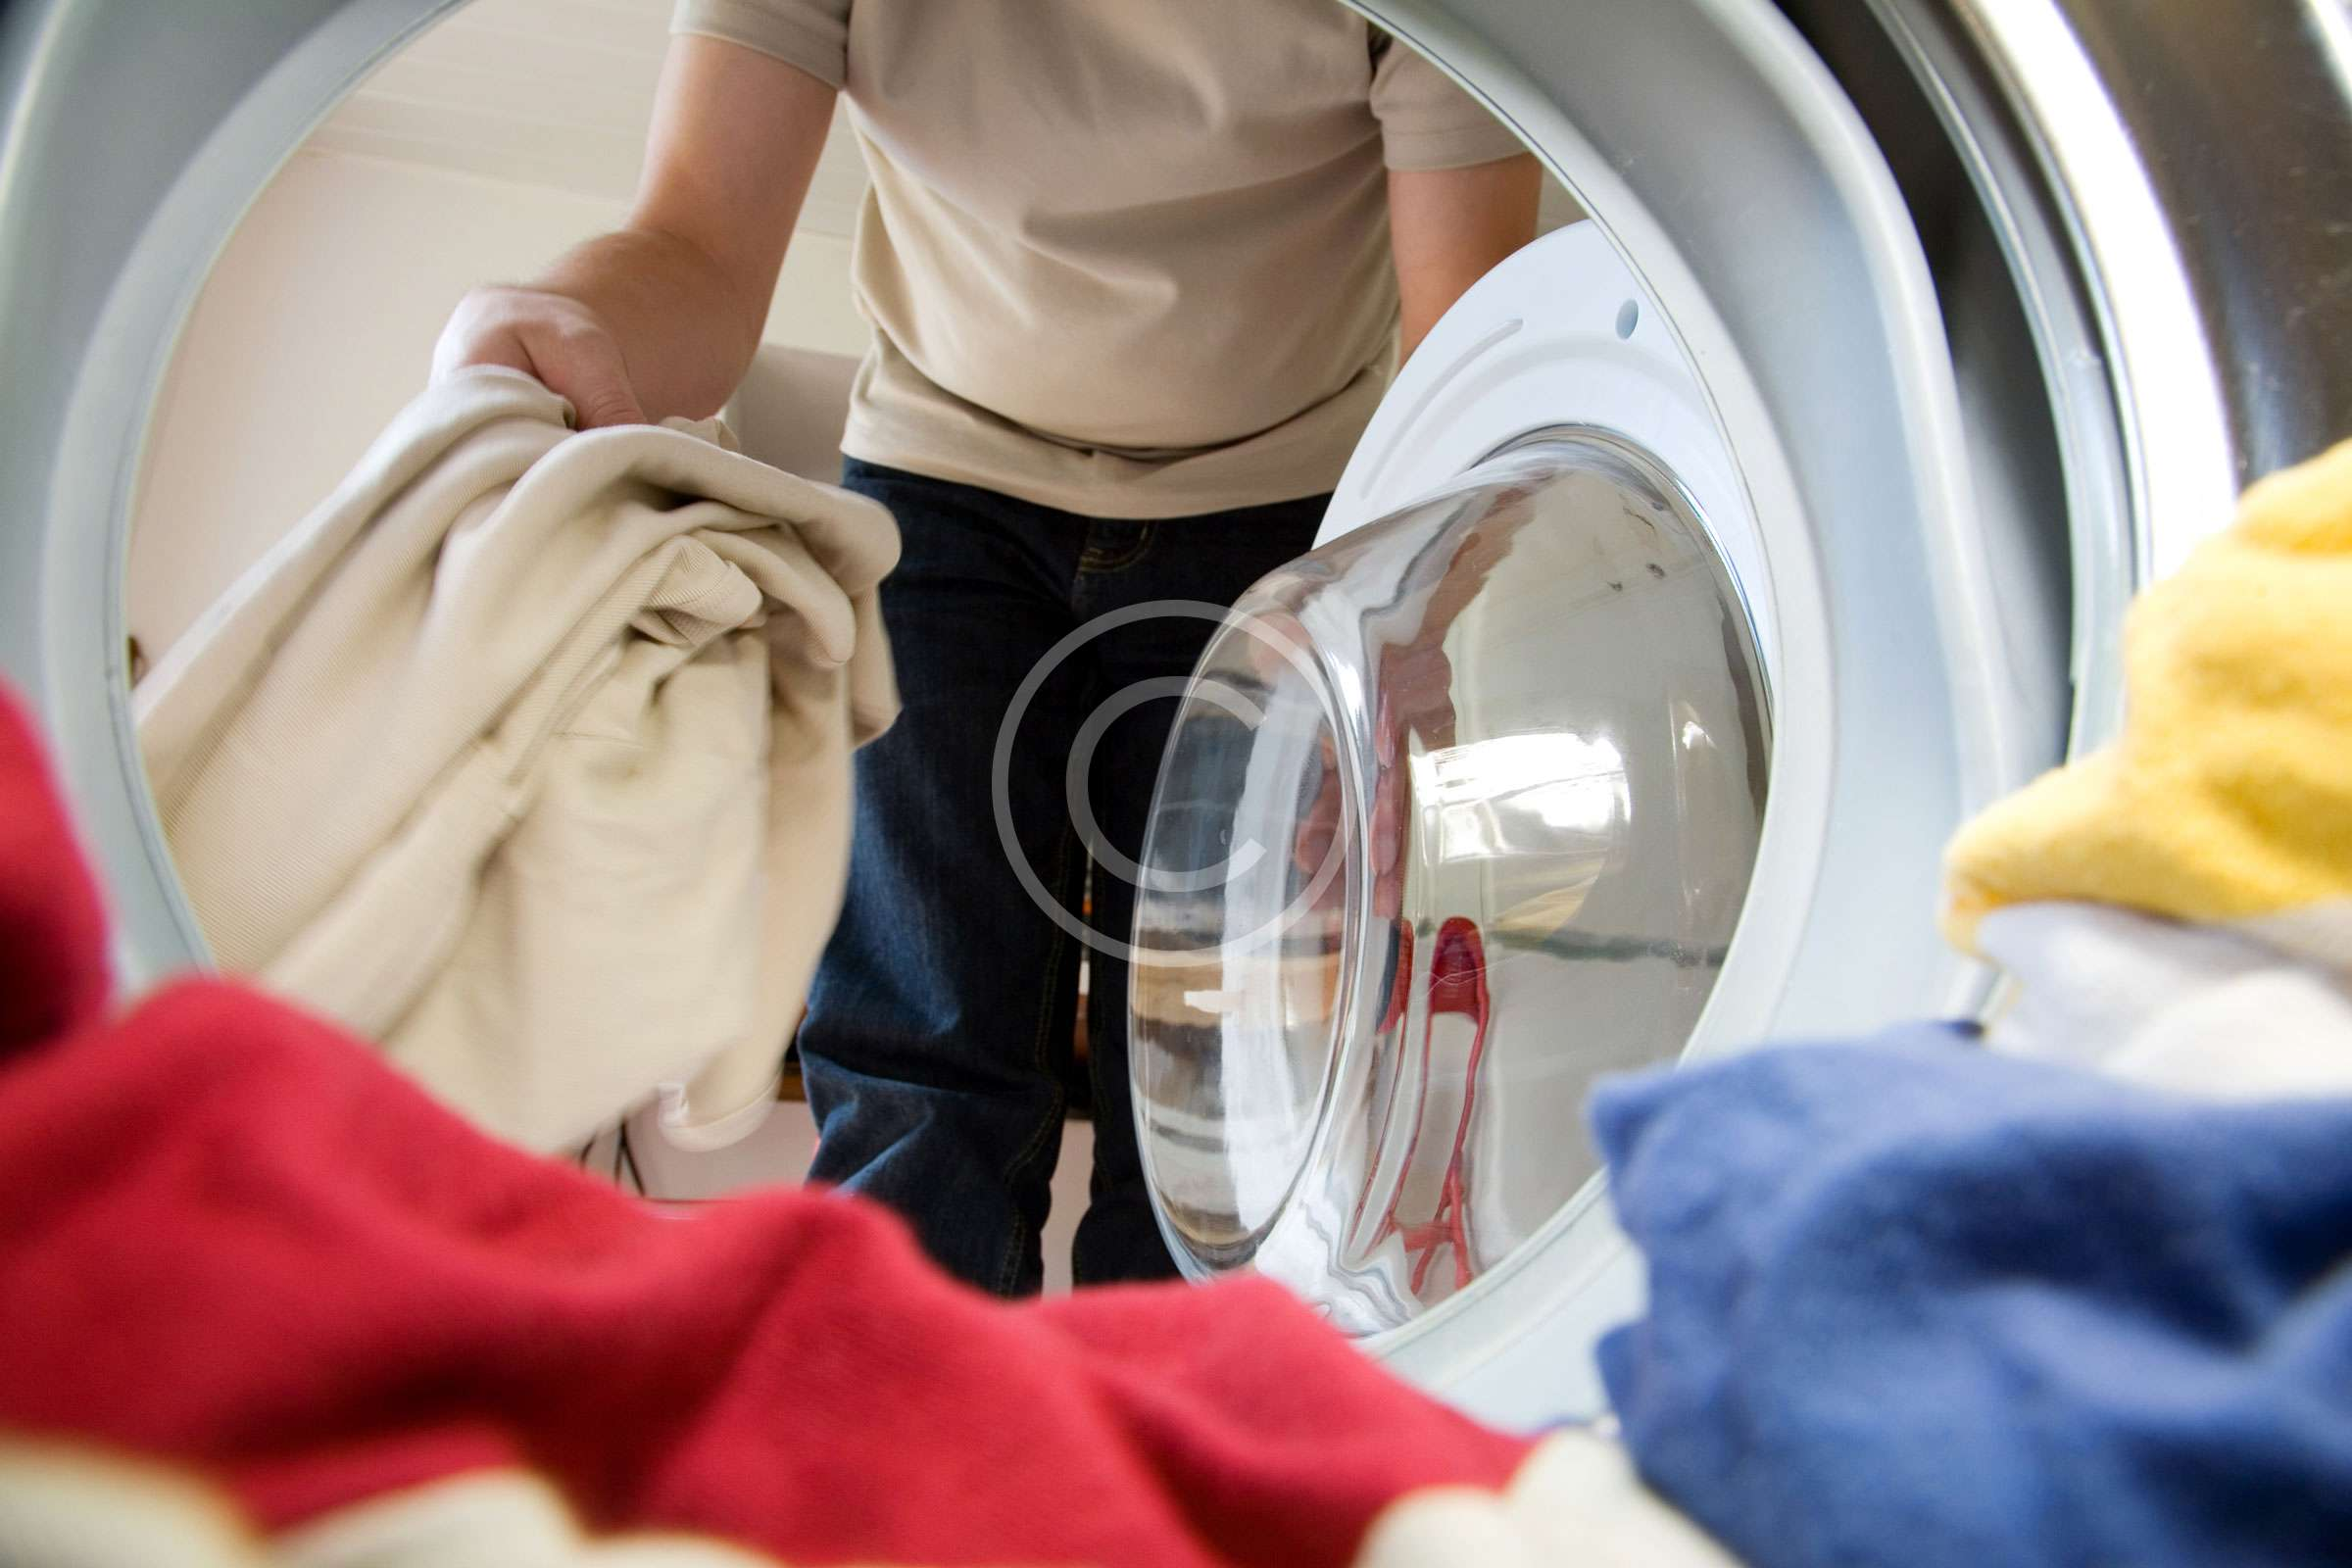 Safe Environment for Doing Laundry